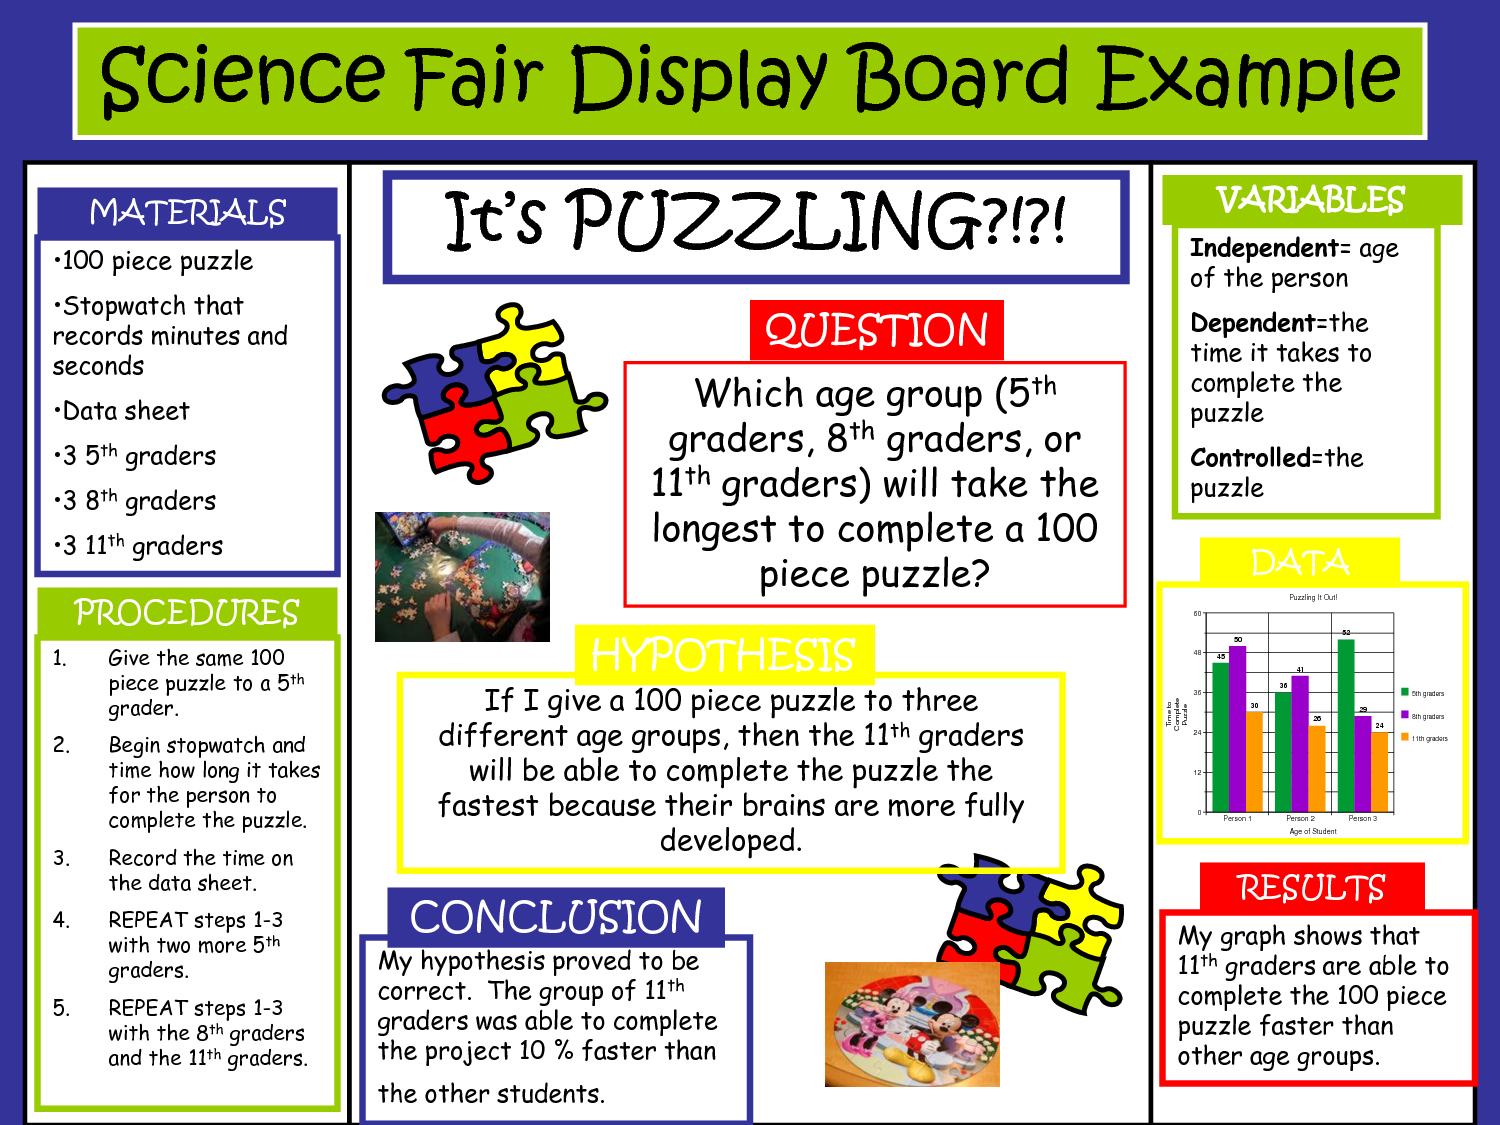 science fair project boards examples science fair display board example [ 1500 x 1125 Pixel ]